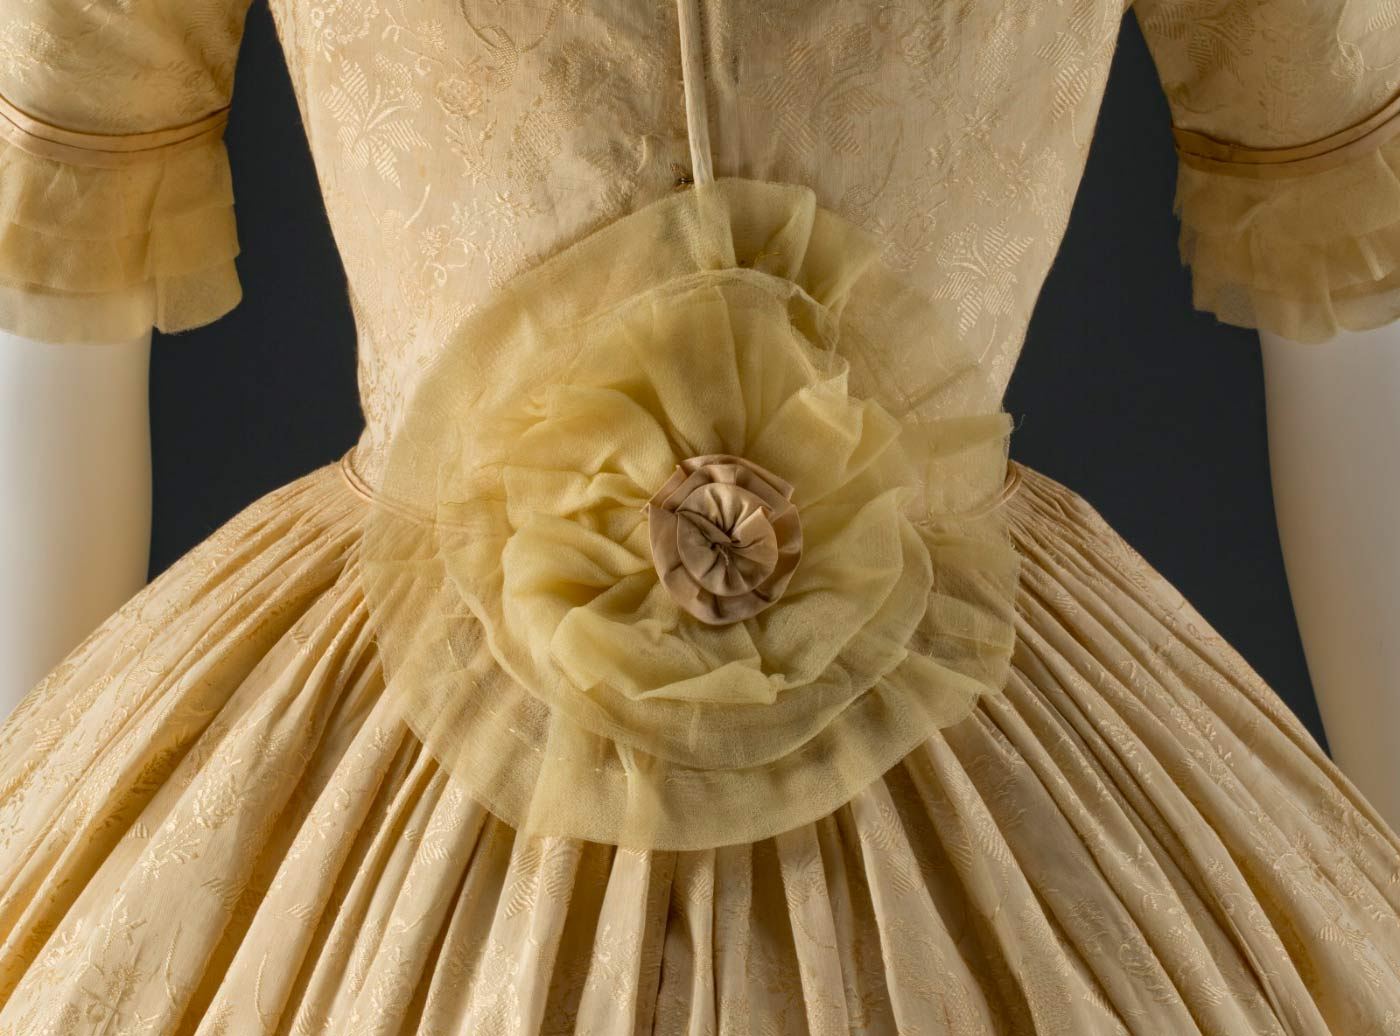 A large gold silk chiffon and satin rosette at the back of the dress conceals alterations to enlarge the waistline.